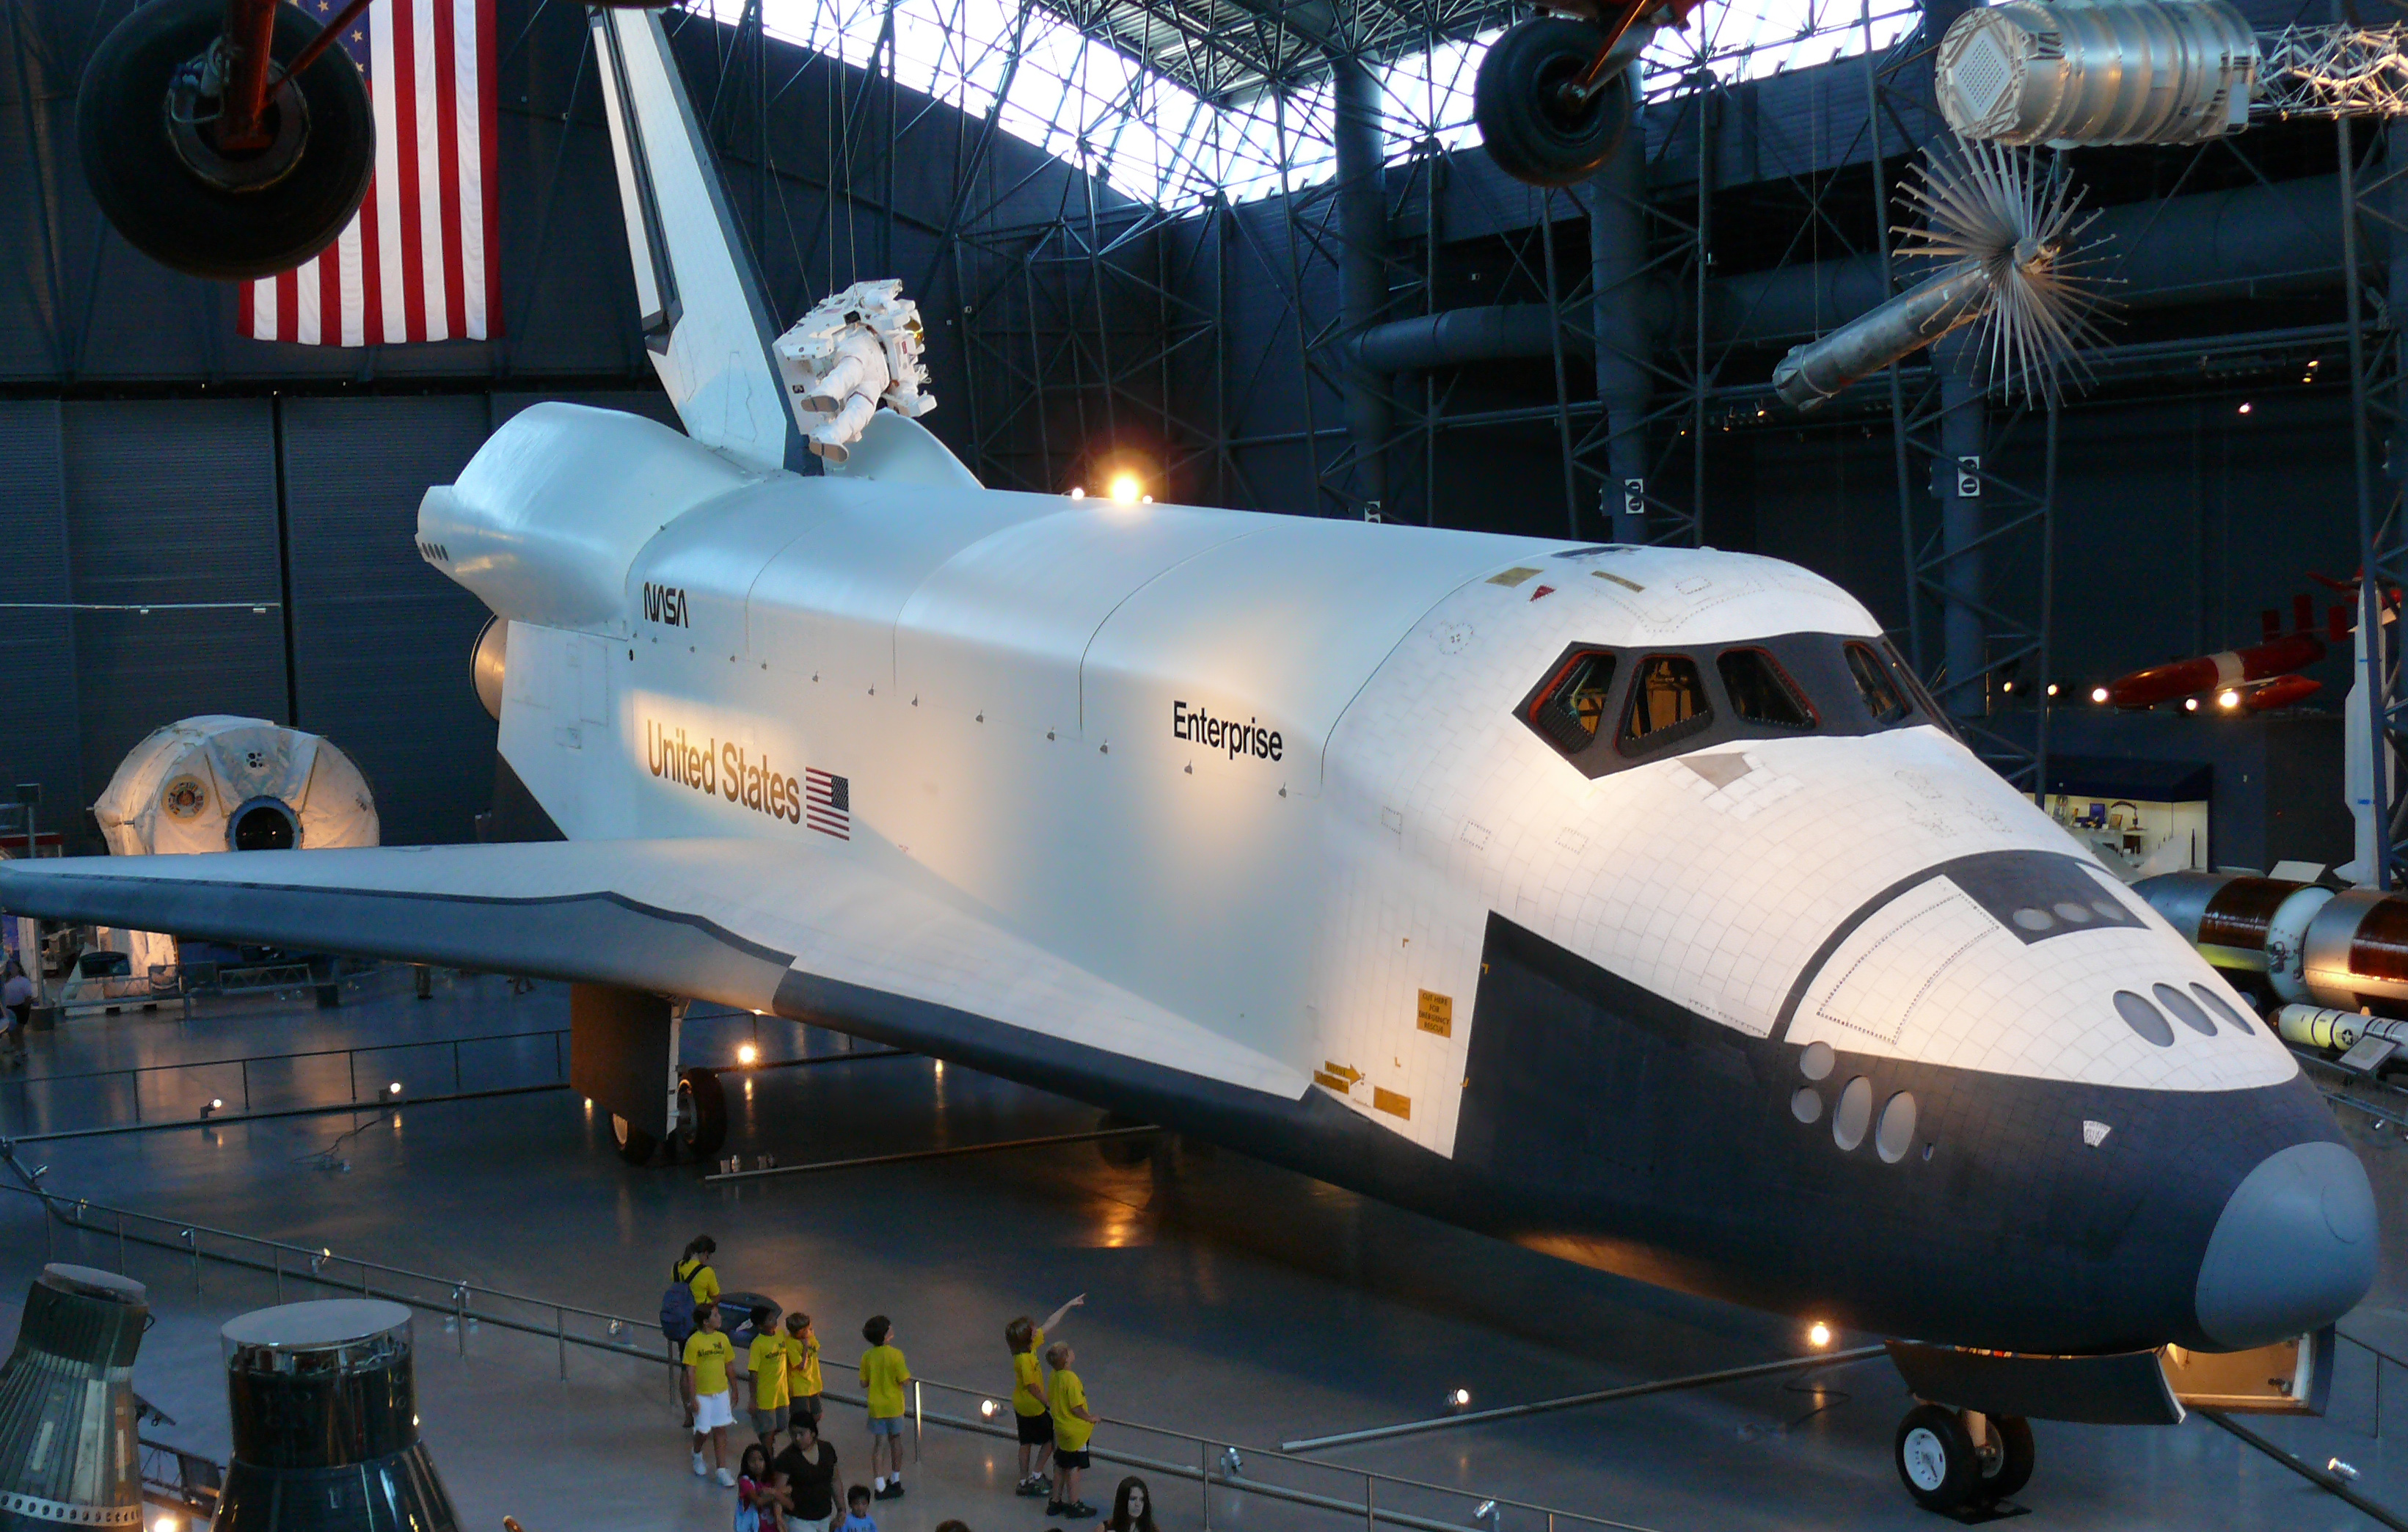 nasa space shuttle replacement vehicle - photo #31